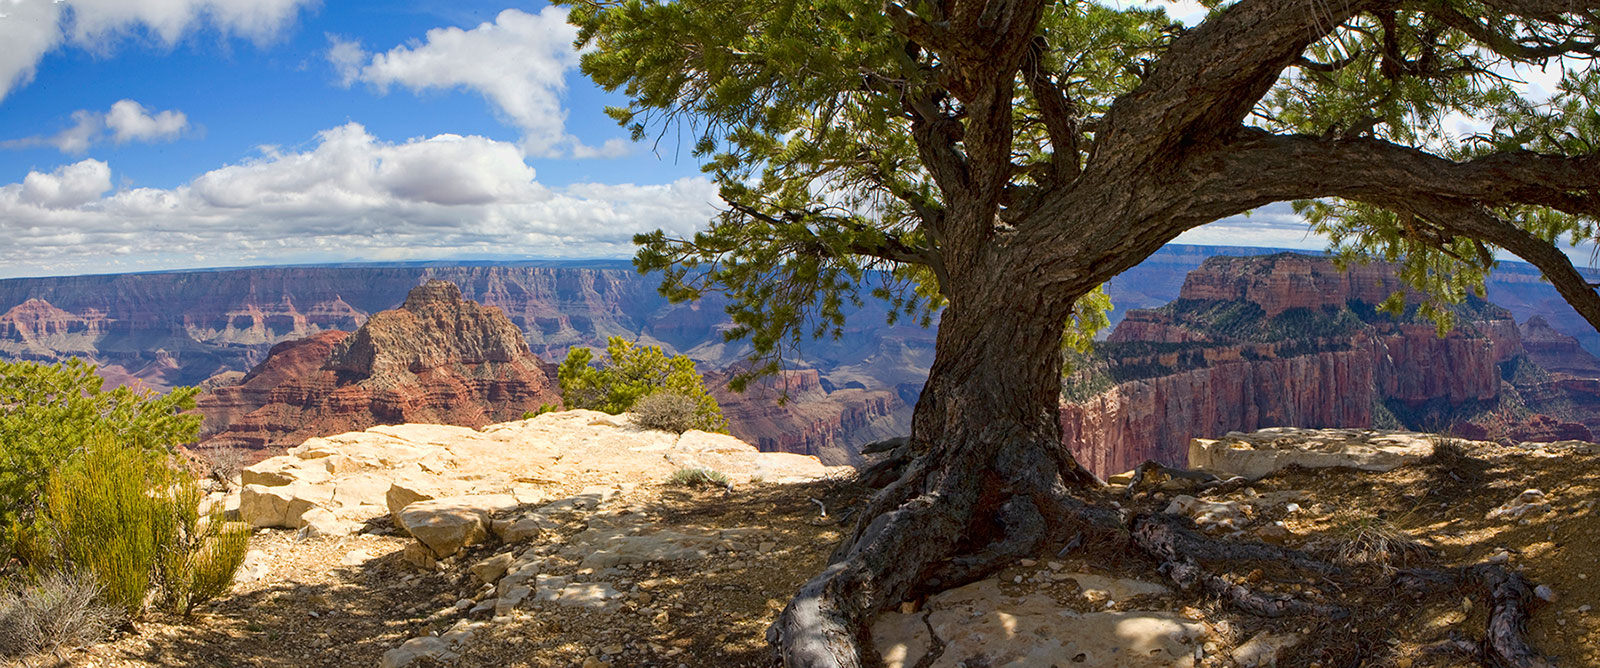 North Rim of the Grand Canyon photo